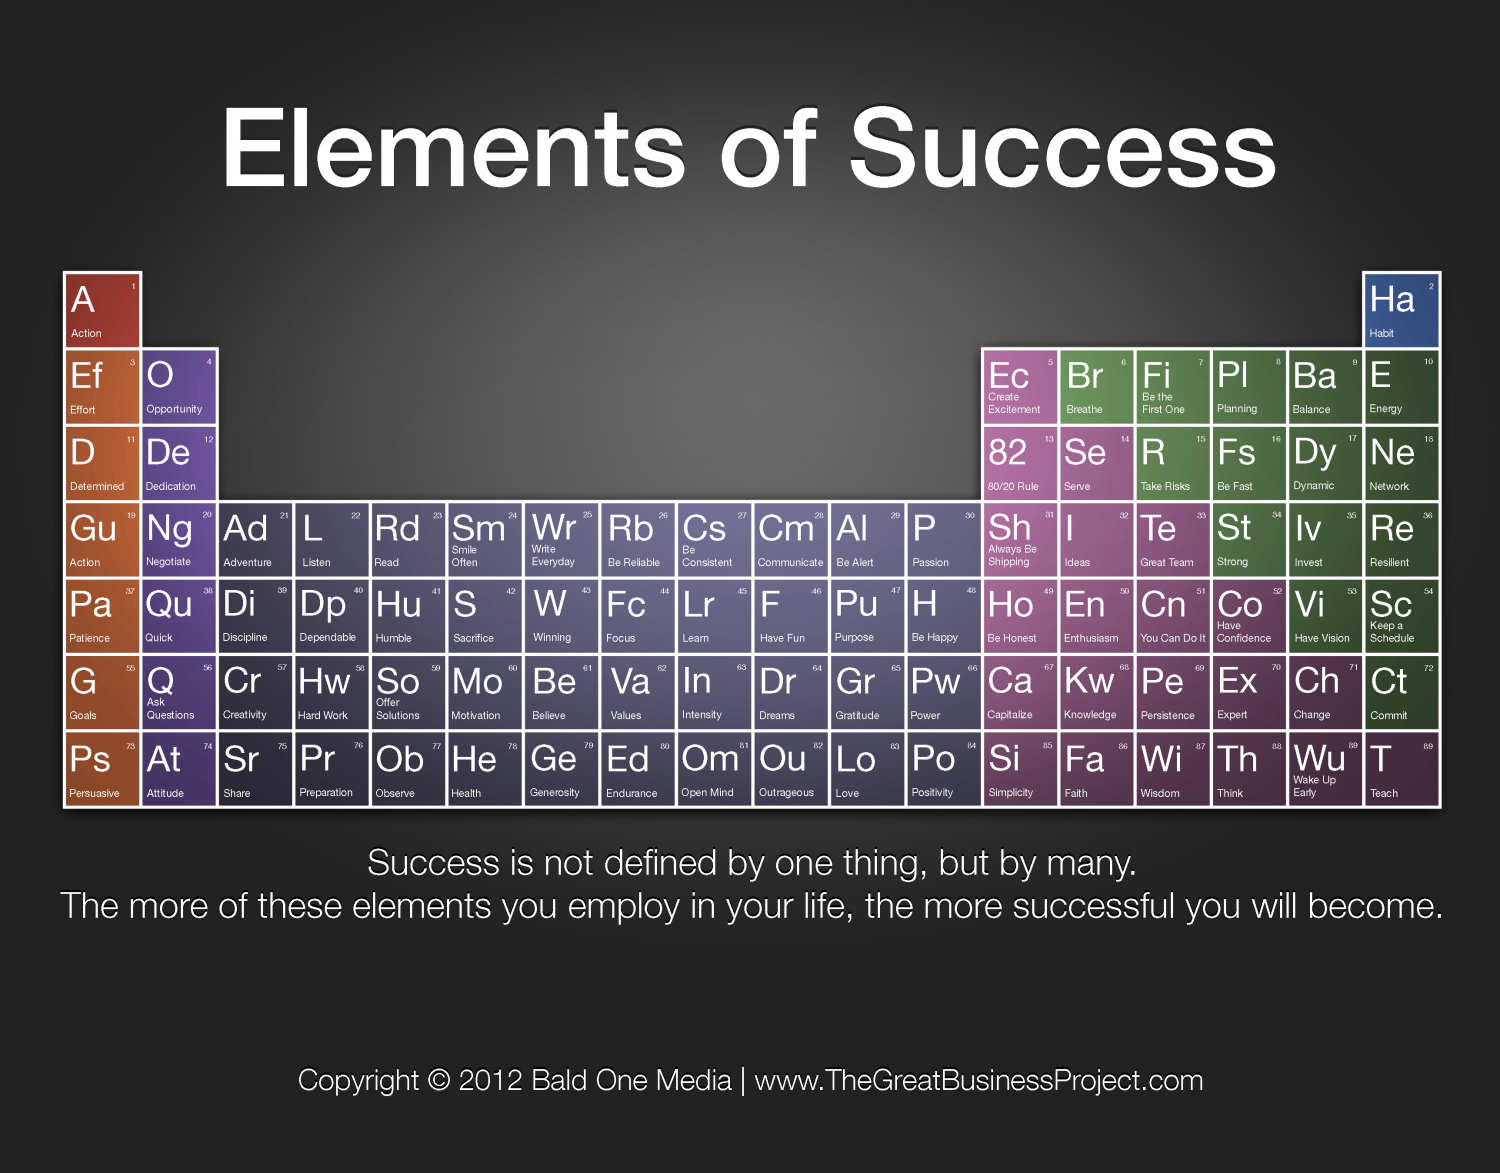 The Elements of Success Infographic